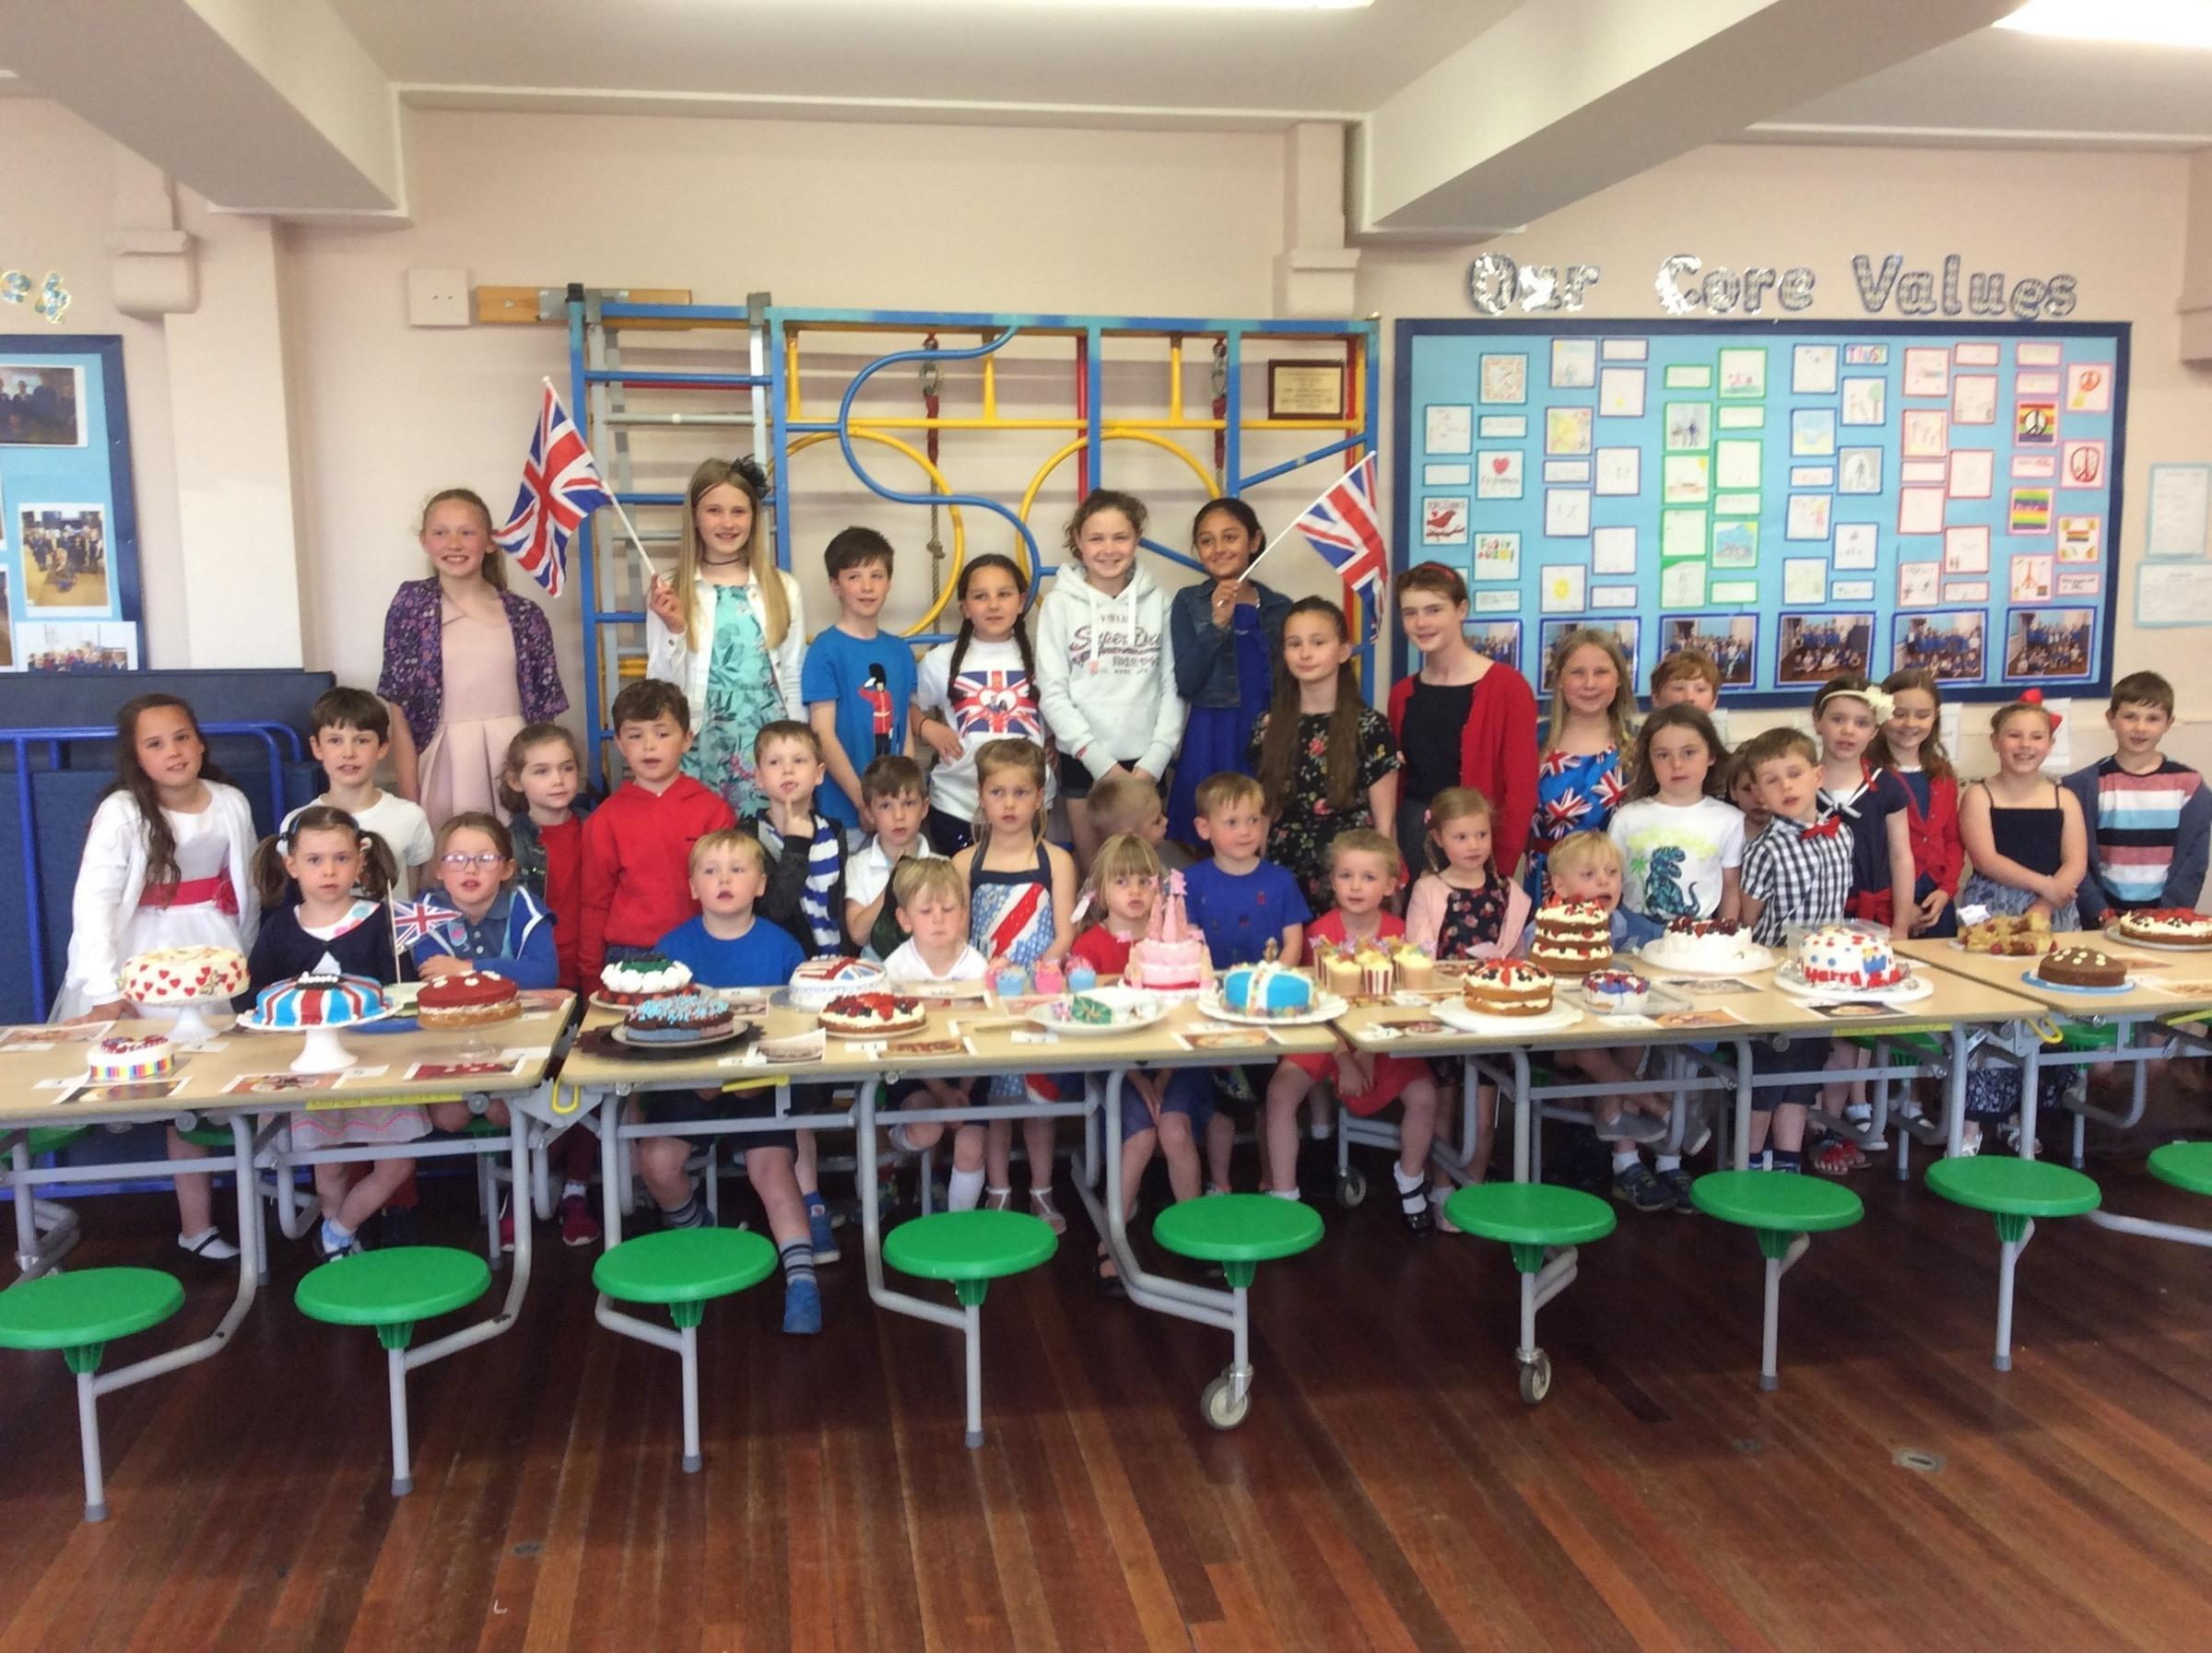 Kildwick Primary School celebrated the Royal Wedding on Friday